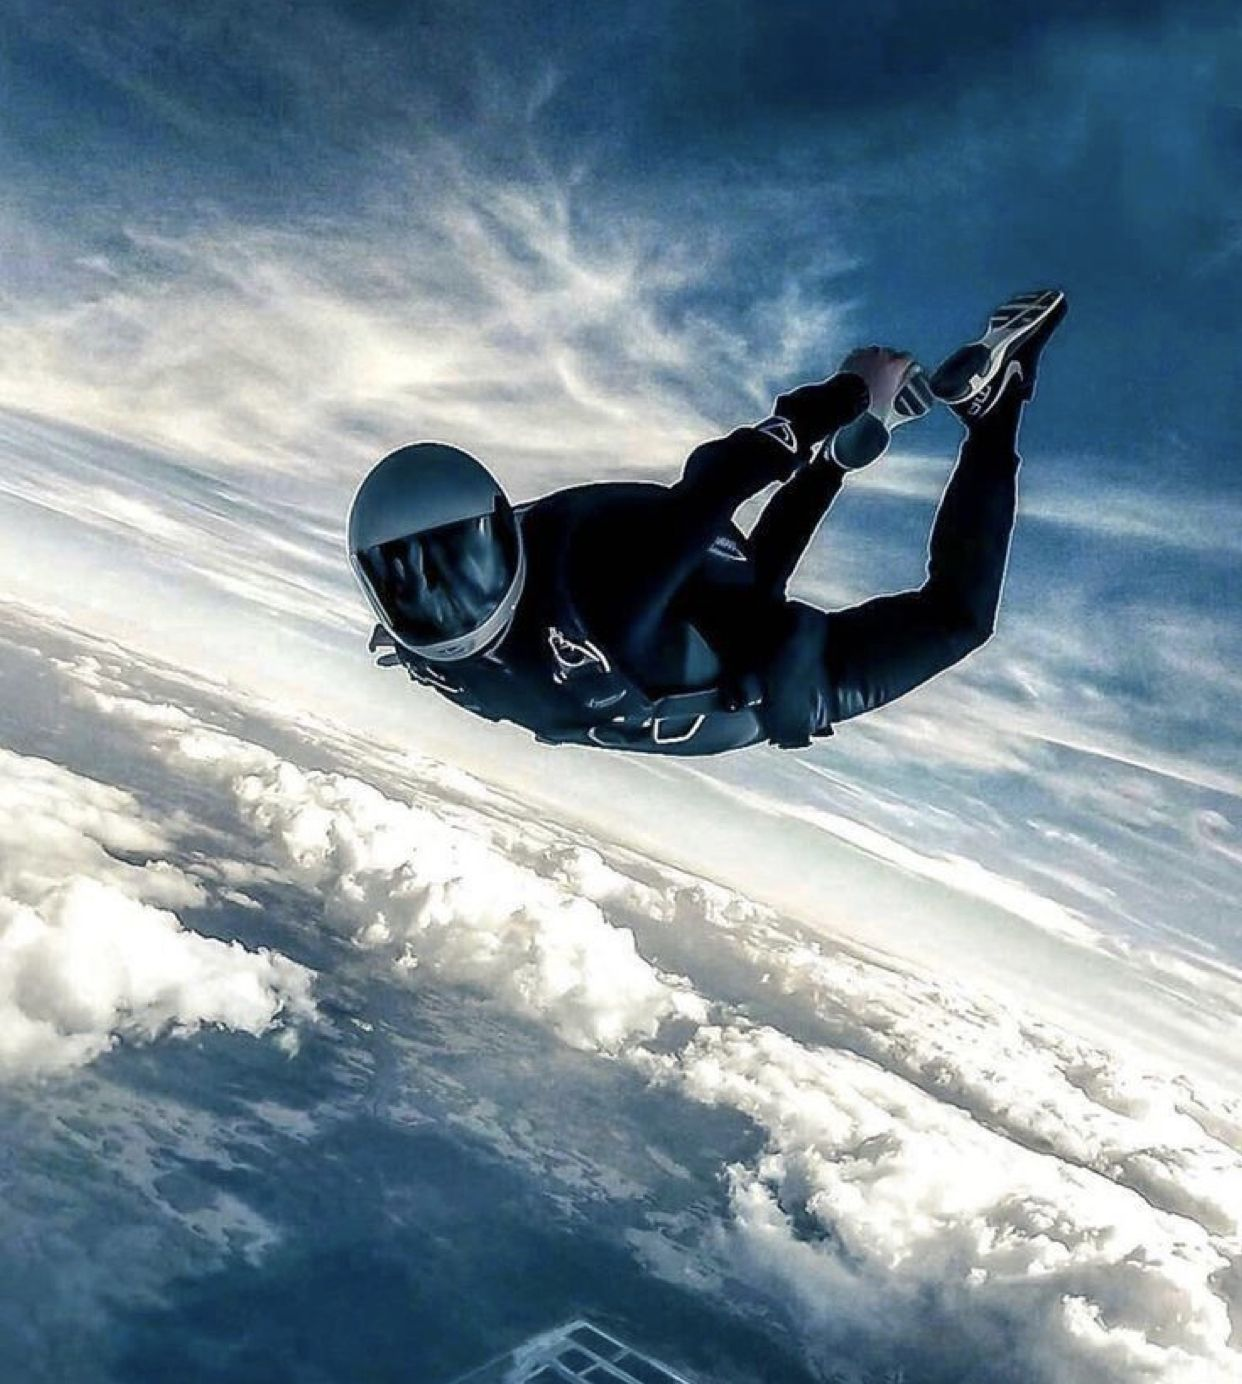 Sky Diving Extreme Adventure Skydiving Extreme Sports